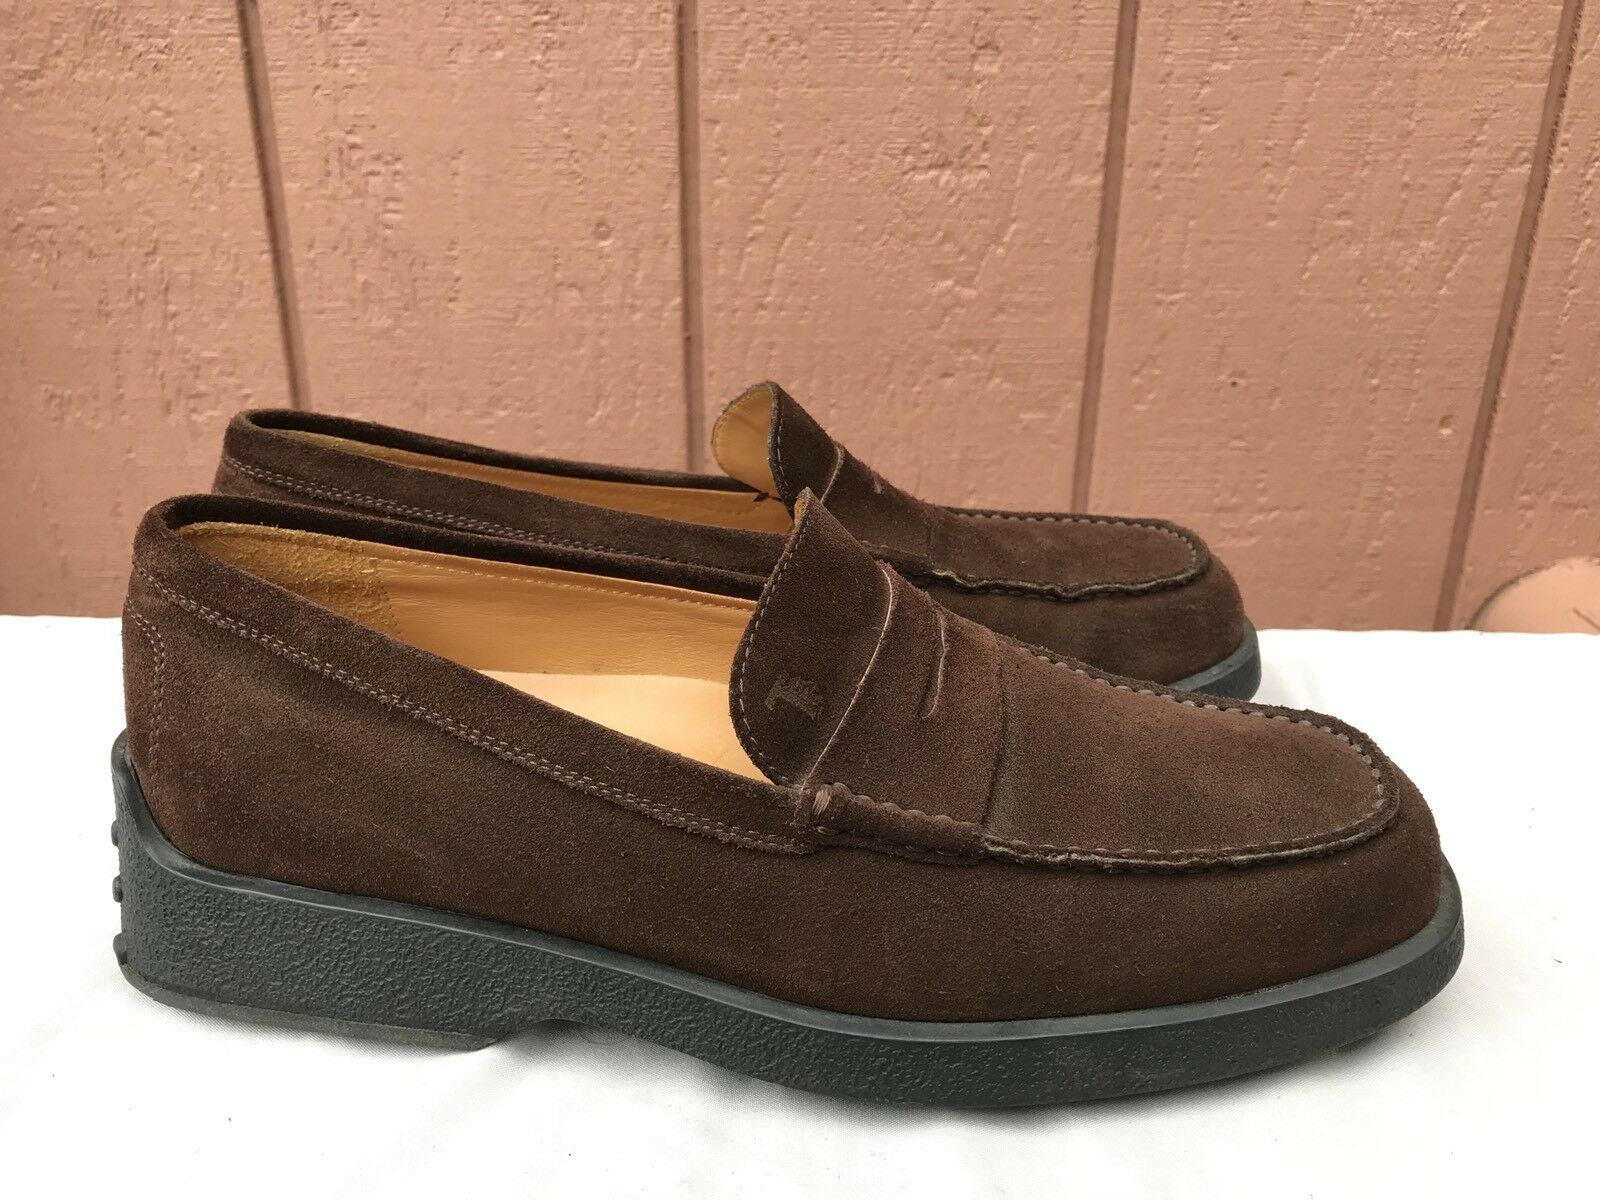 MINT Tod's Men's US 9.5 Penny Loafer Driving Moc Brown Suede Fashion Shoes A1